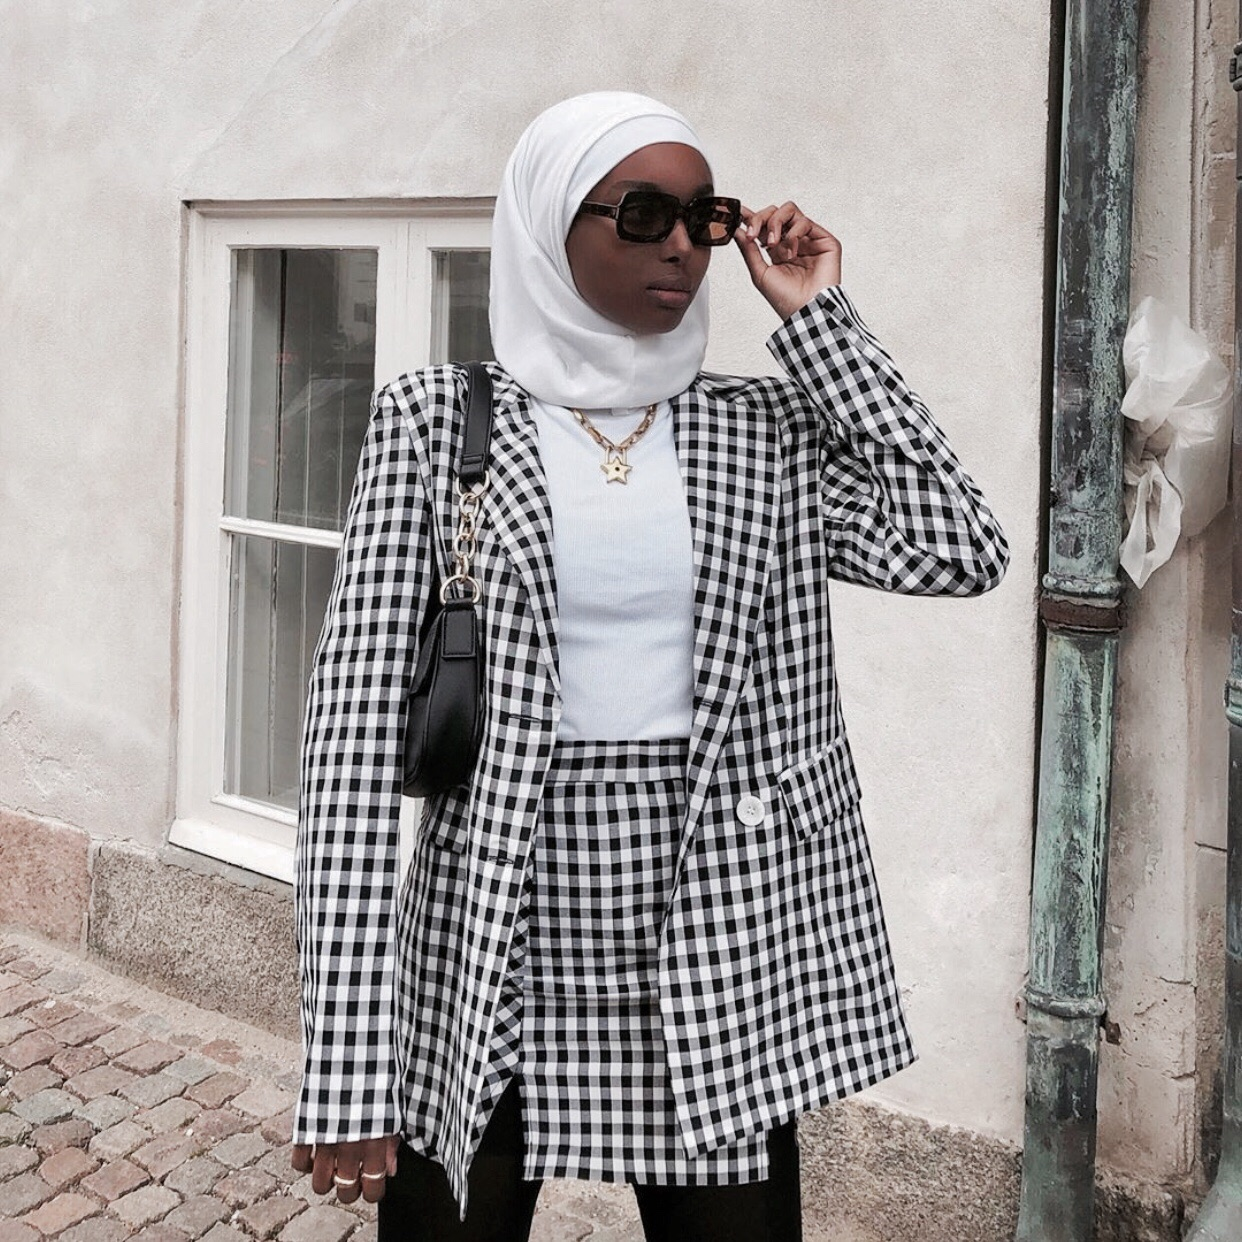 Image in fashion collection by farida on We Heart It